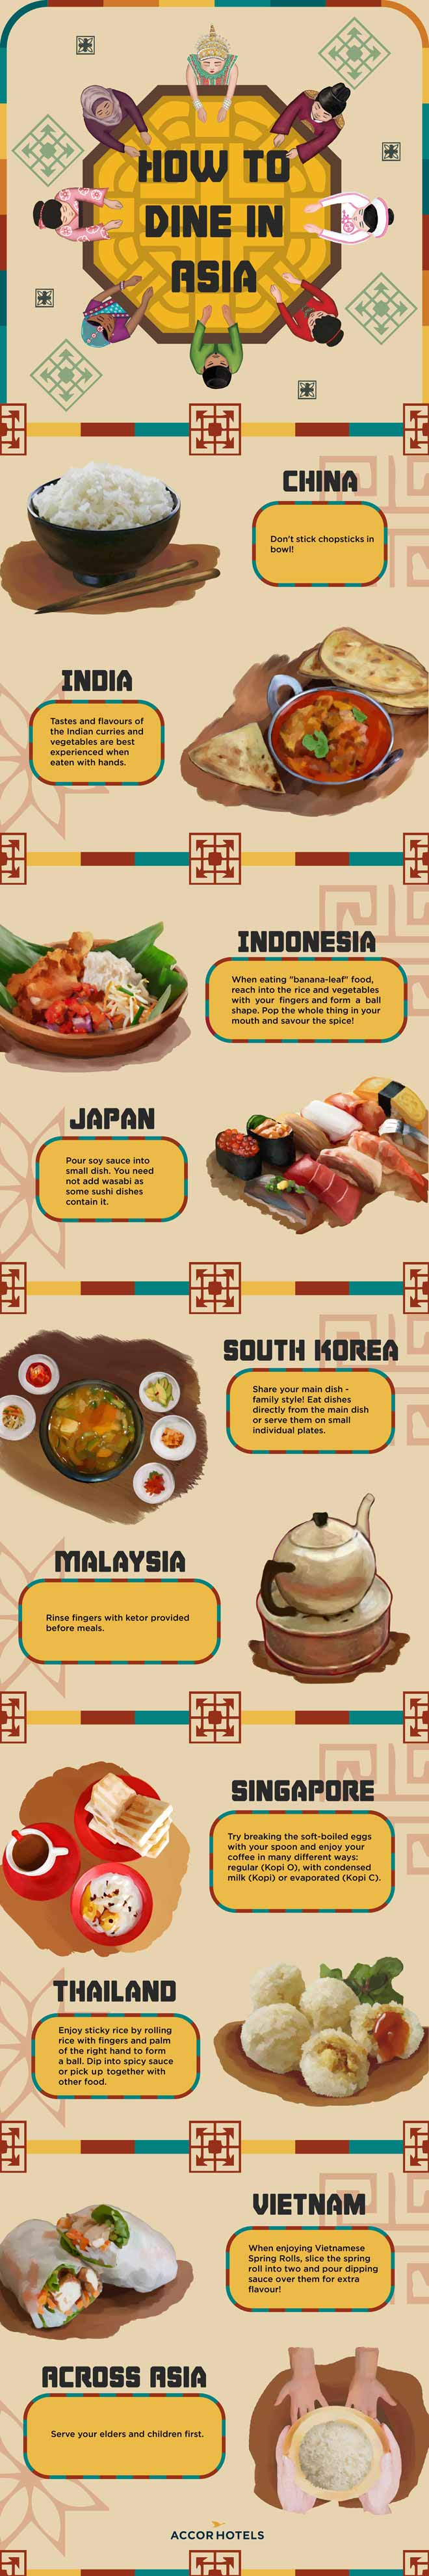 How to Dine in Asia